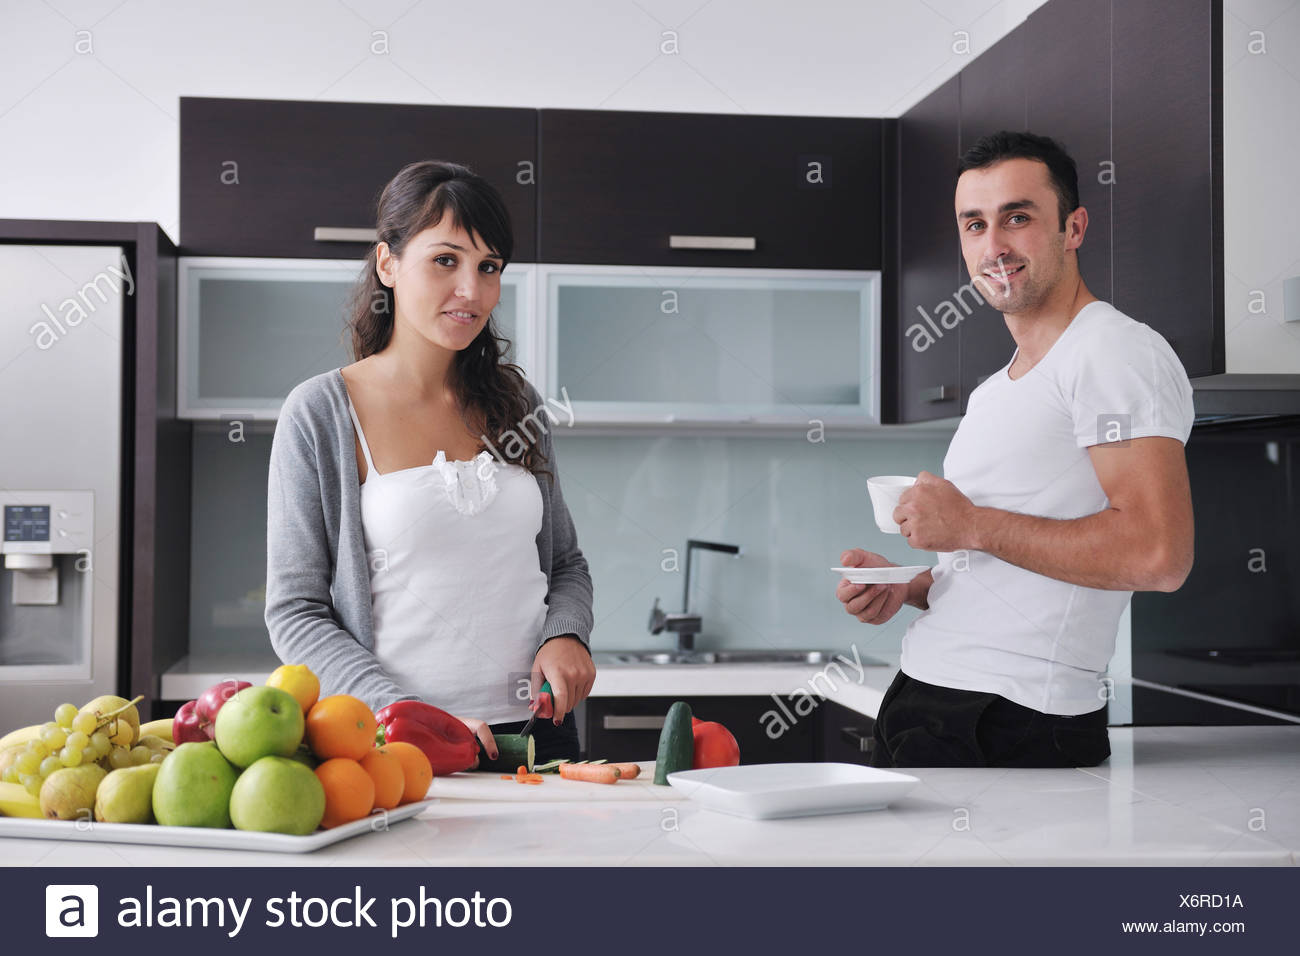 Two Women In Kitchen Stock Photos & Two Women In Kitchen Stock ...